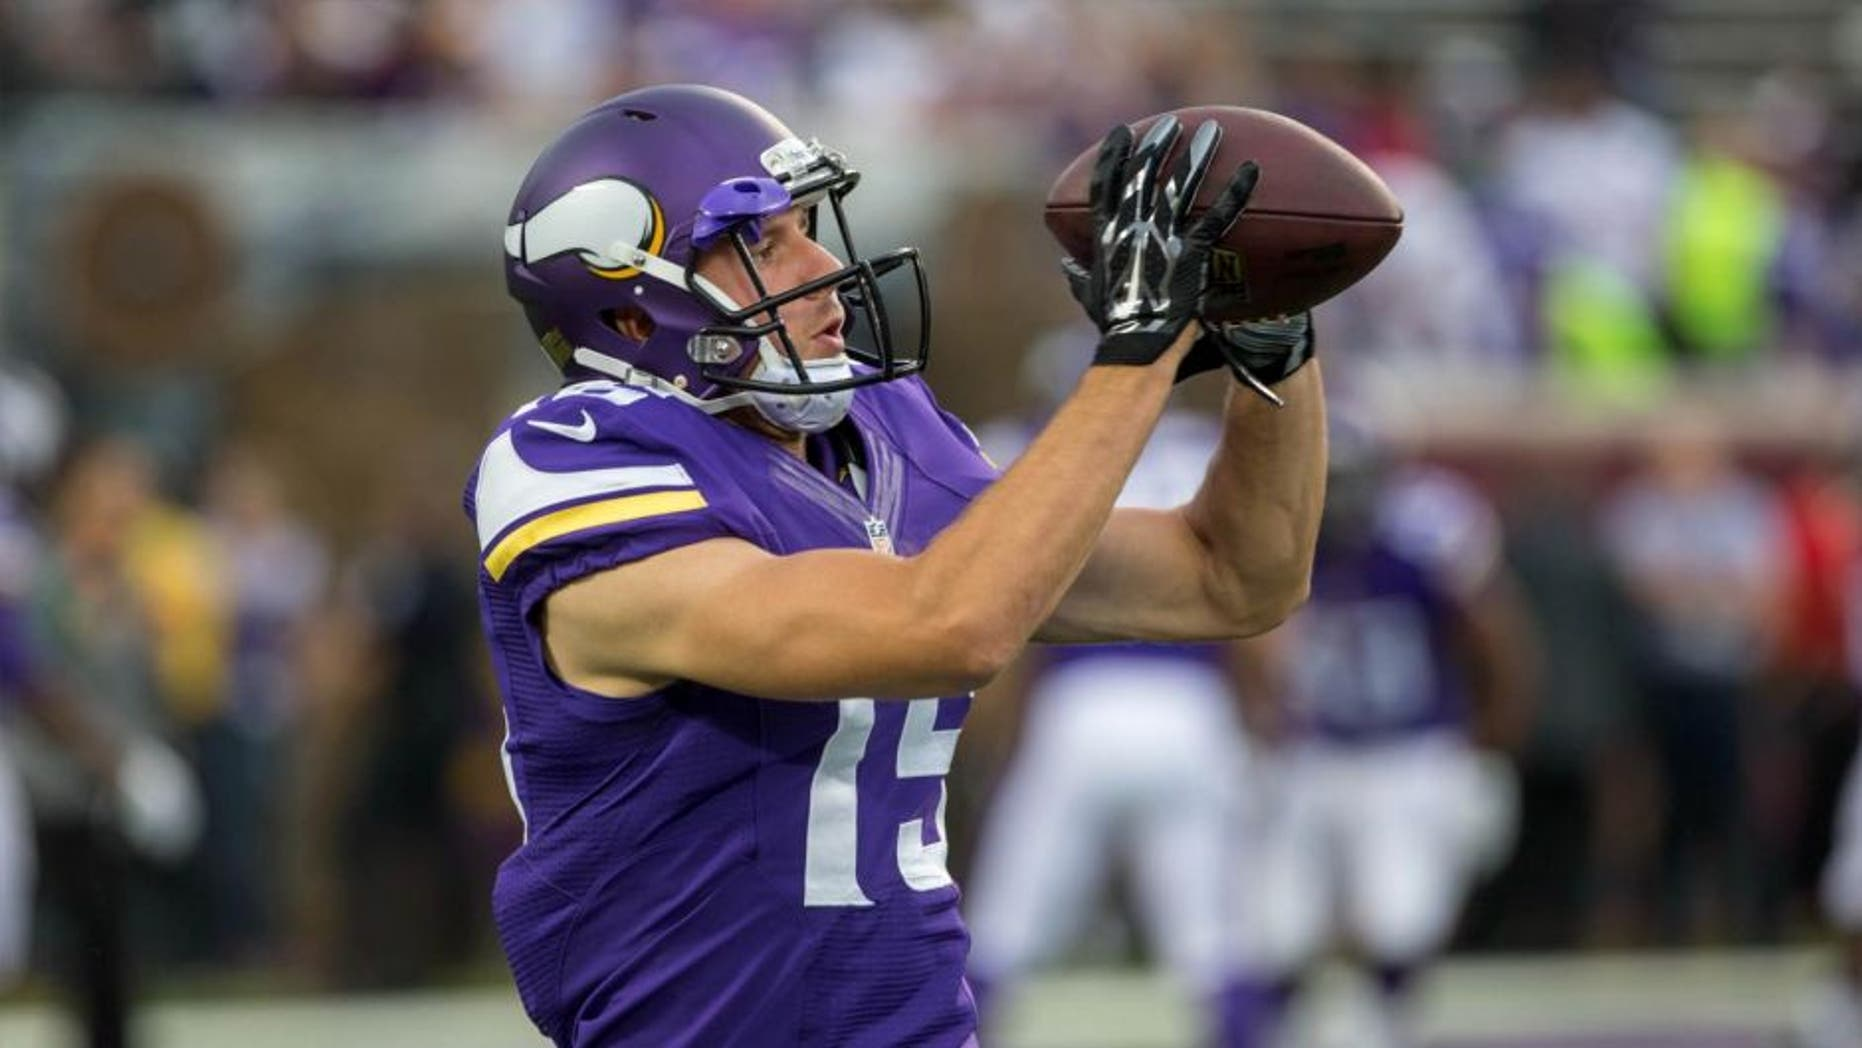 Minnesota Vikings wide receiver Isaac Fruechte catches a pass before the game Aug. 22, 2015, against the Oakland Raiders at TCF Bank Stadium.